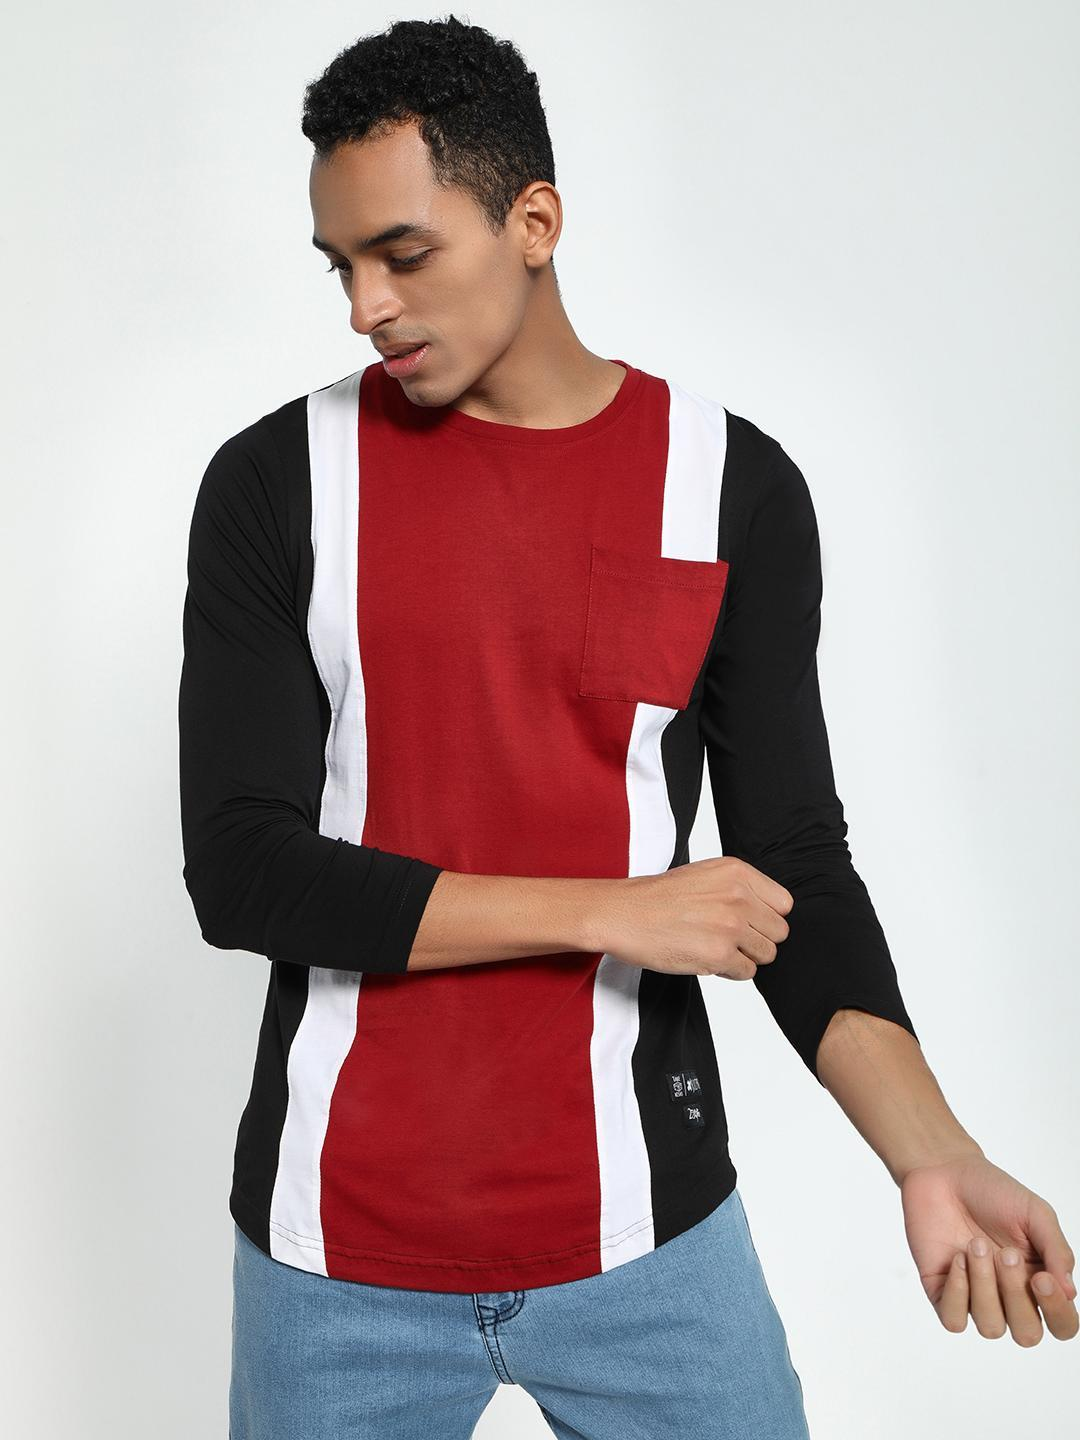 Kultprit Multi Colour Block Panel T-Shirt 1